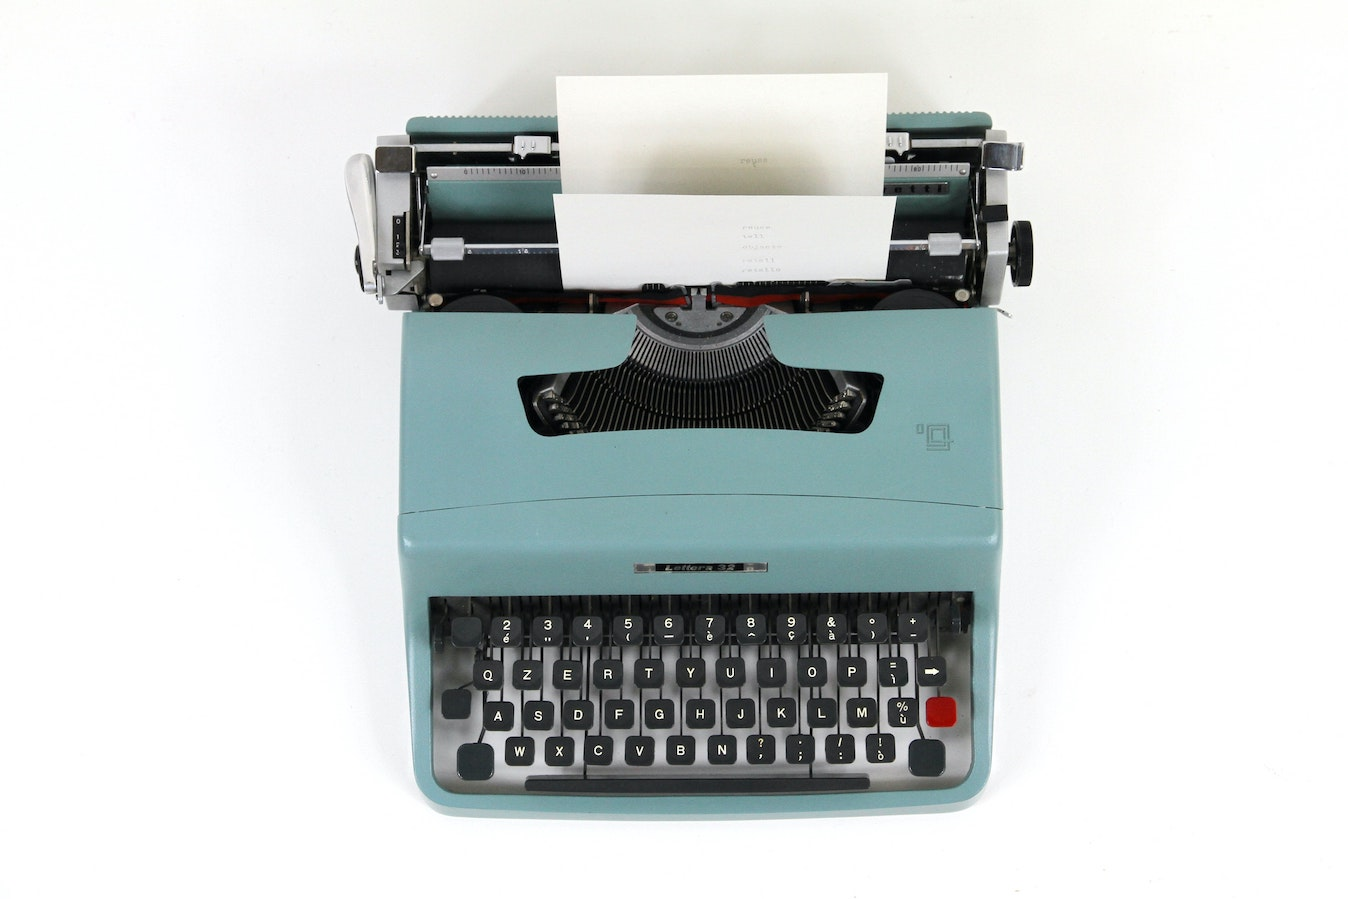 A teal typewriter